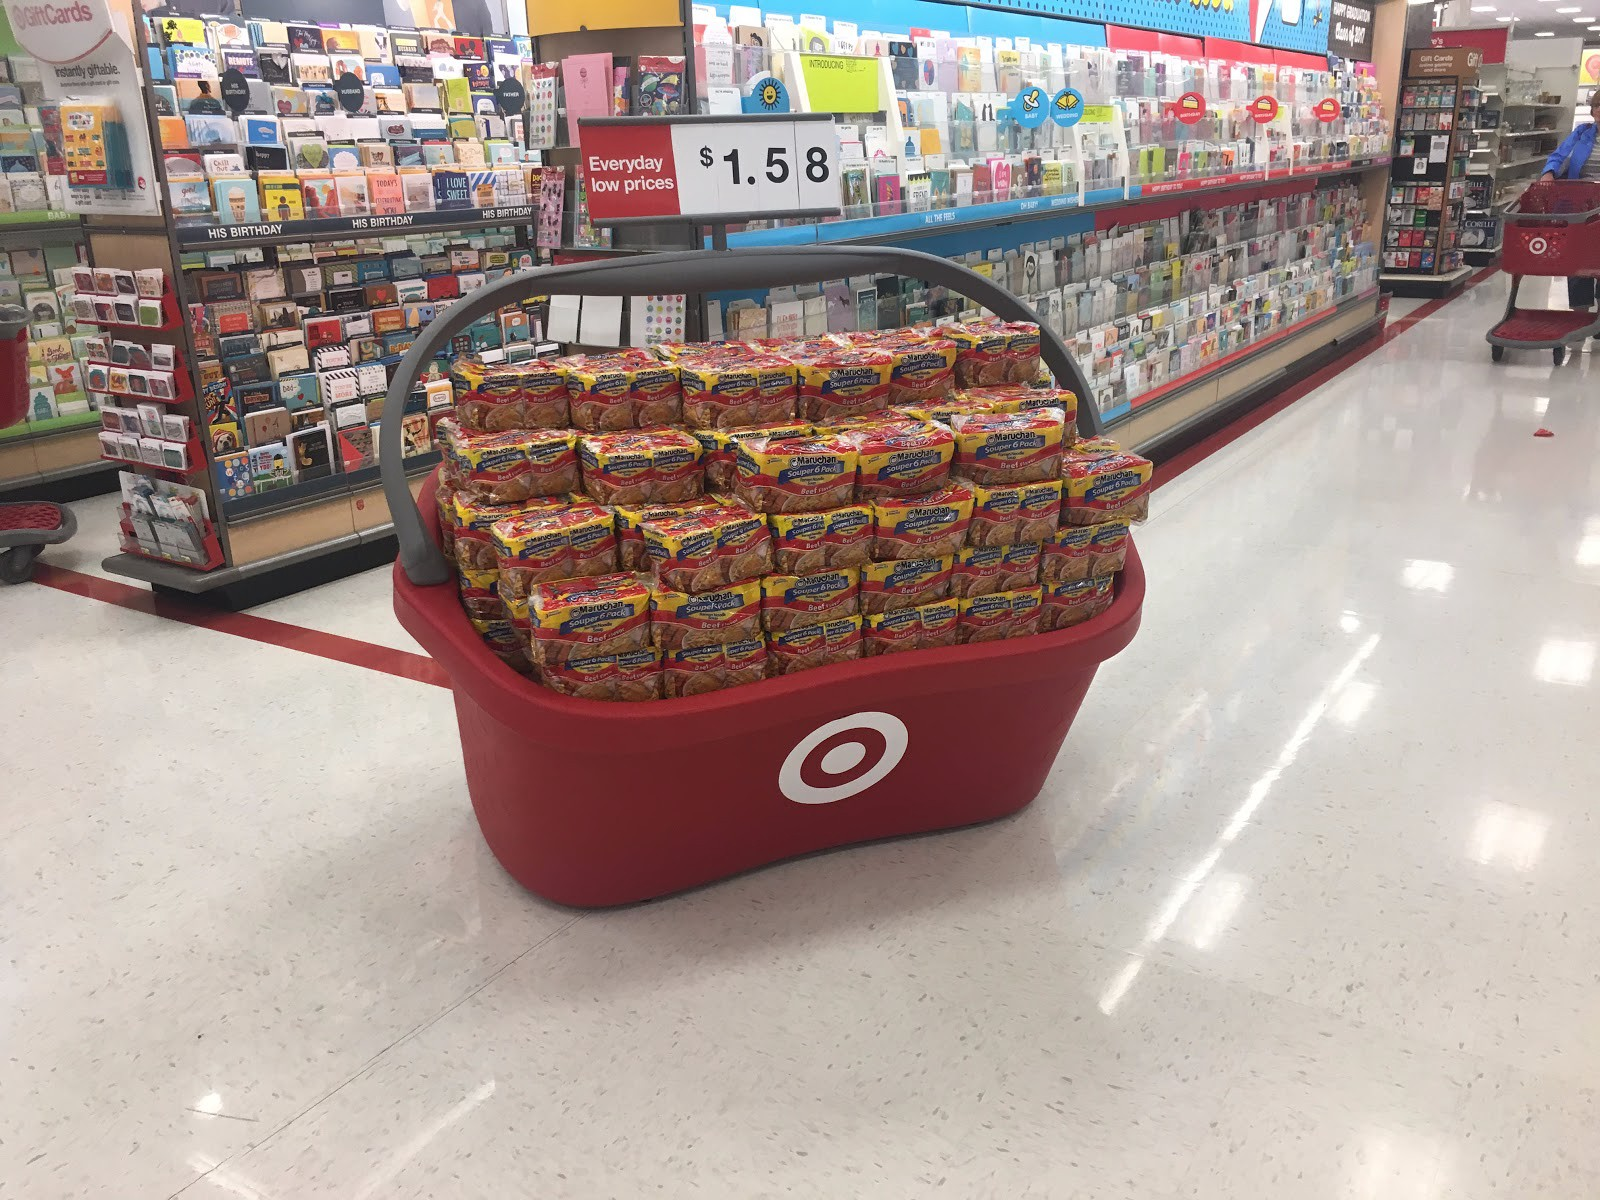 Theyre Displays Made To Look Like Jumbo Versions Of Targets Shopping Baskets Highlighting The Iconic Target Red Color And Bullseye Logo